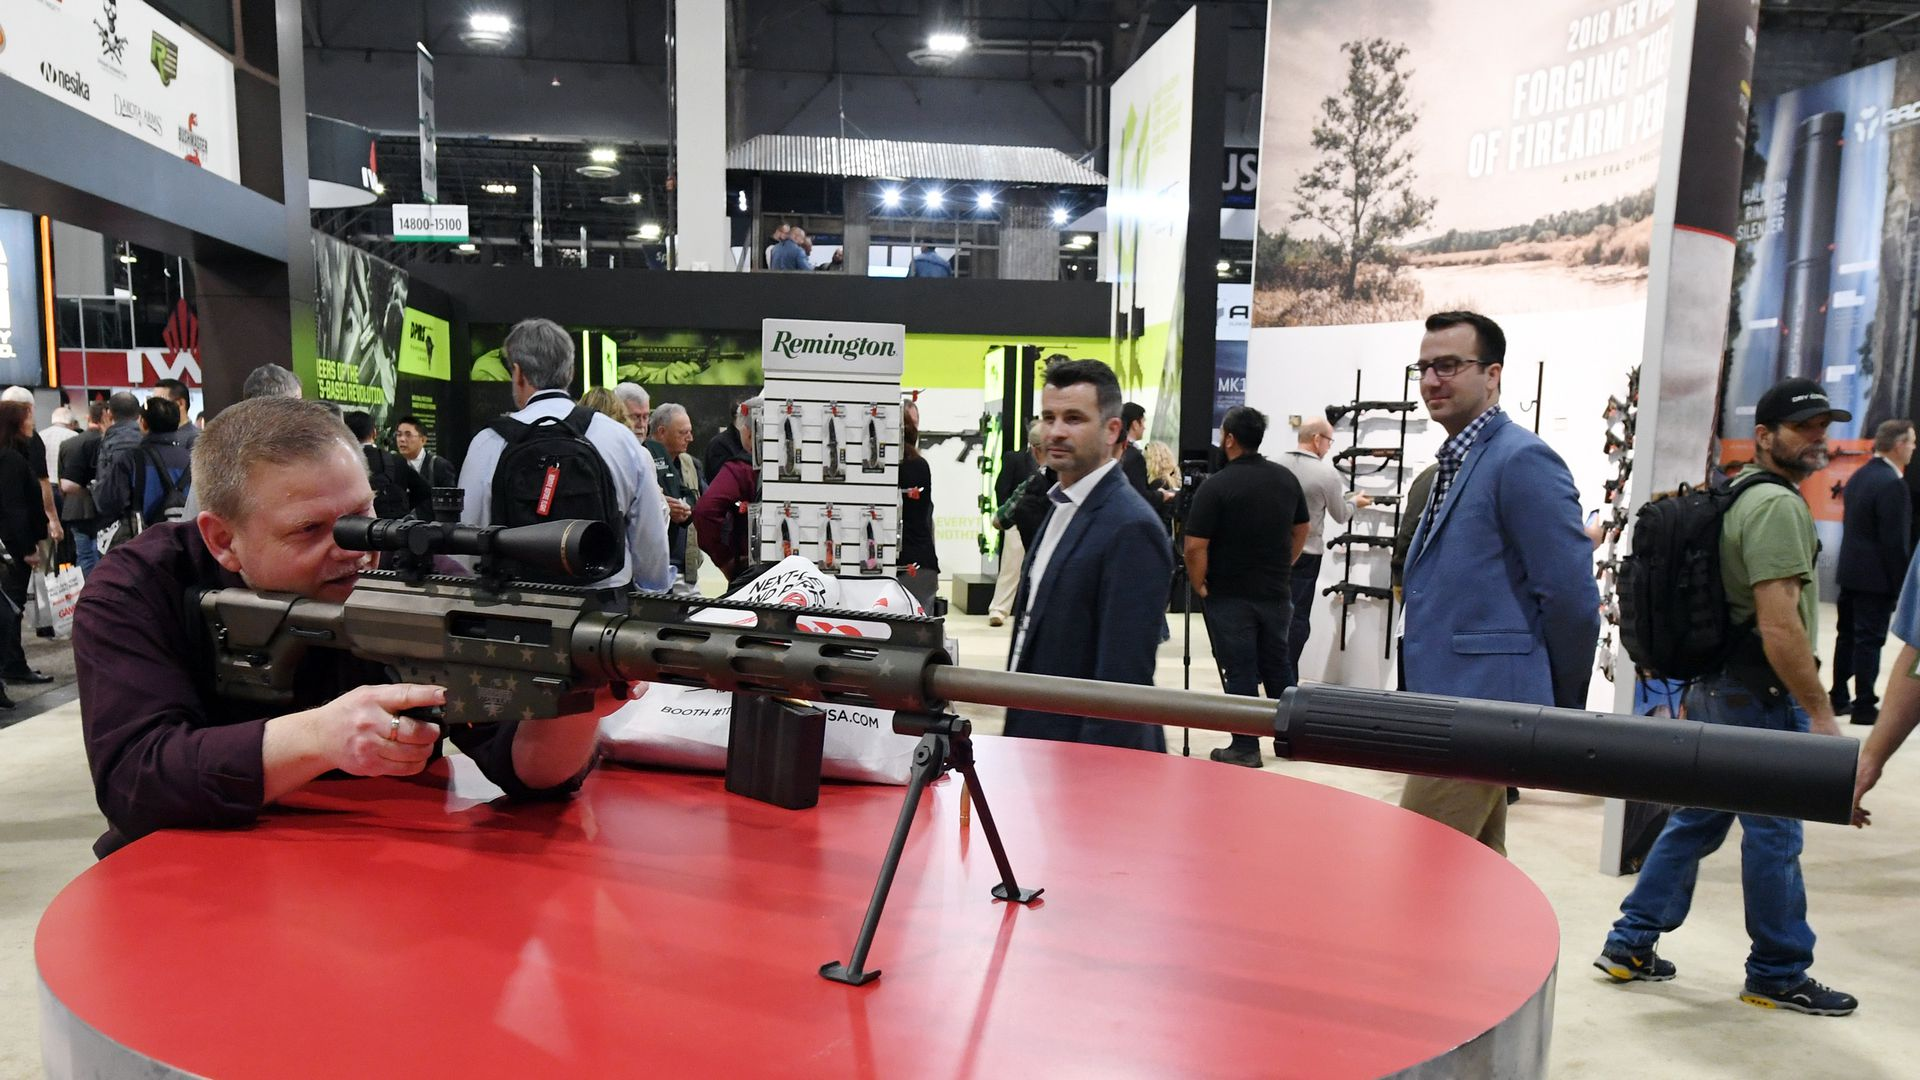 Man examines rifle at tradeshow.